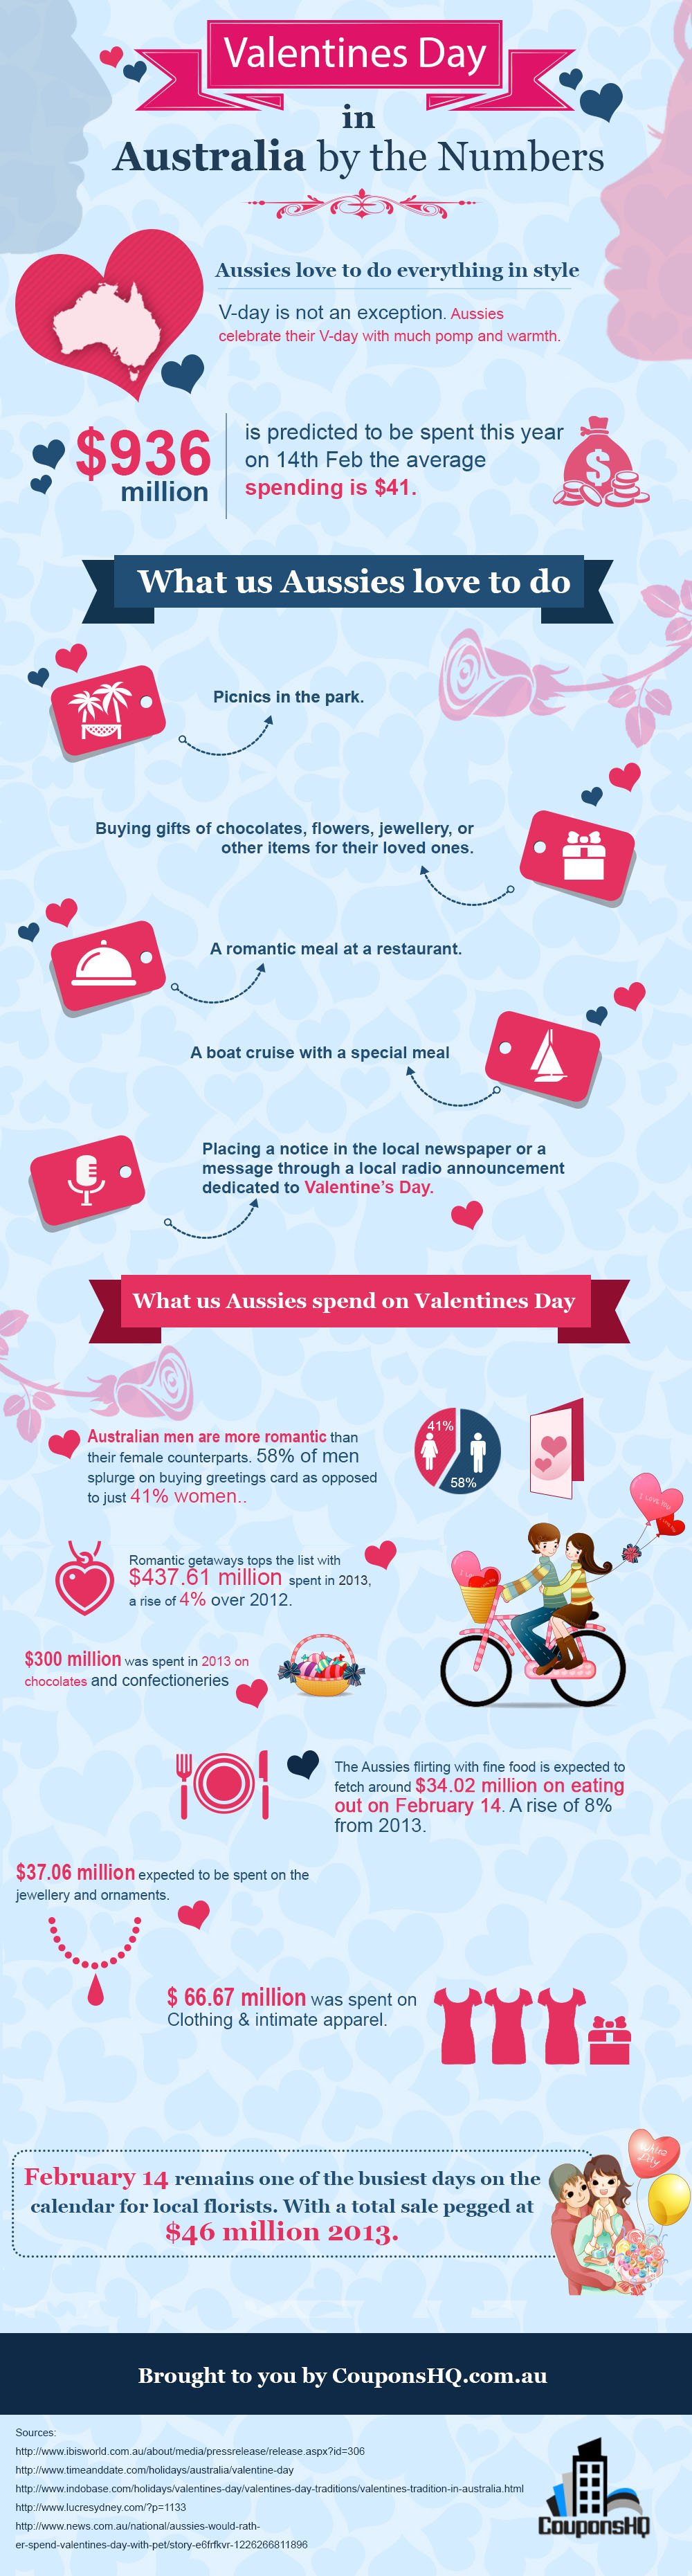 Valentines Day In Australia By The Numbers [Infographic]